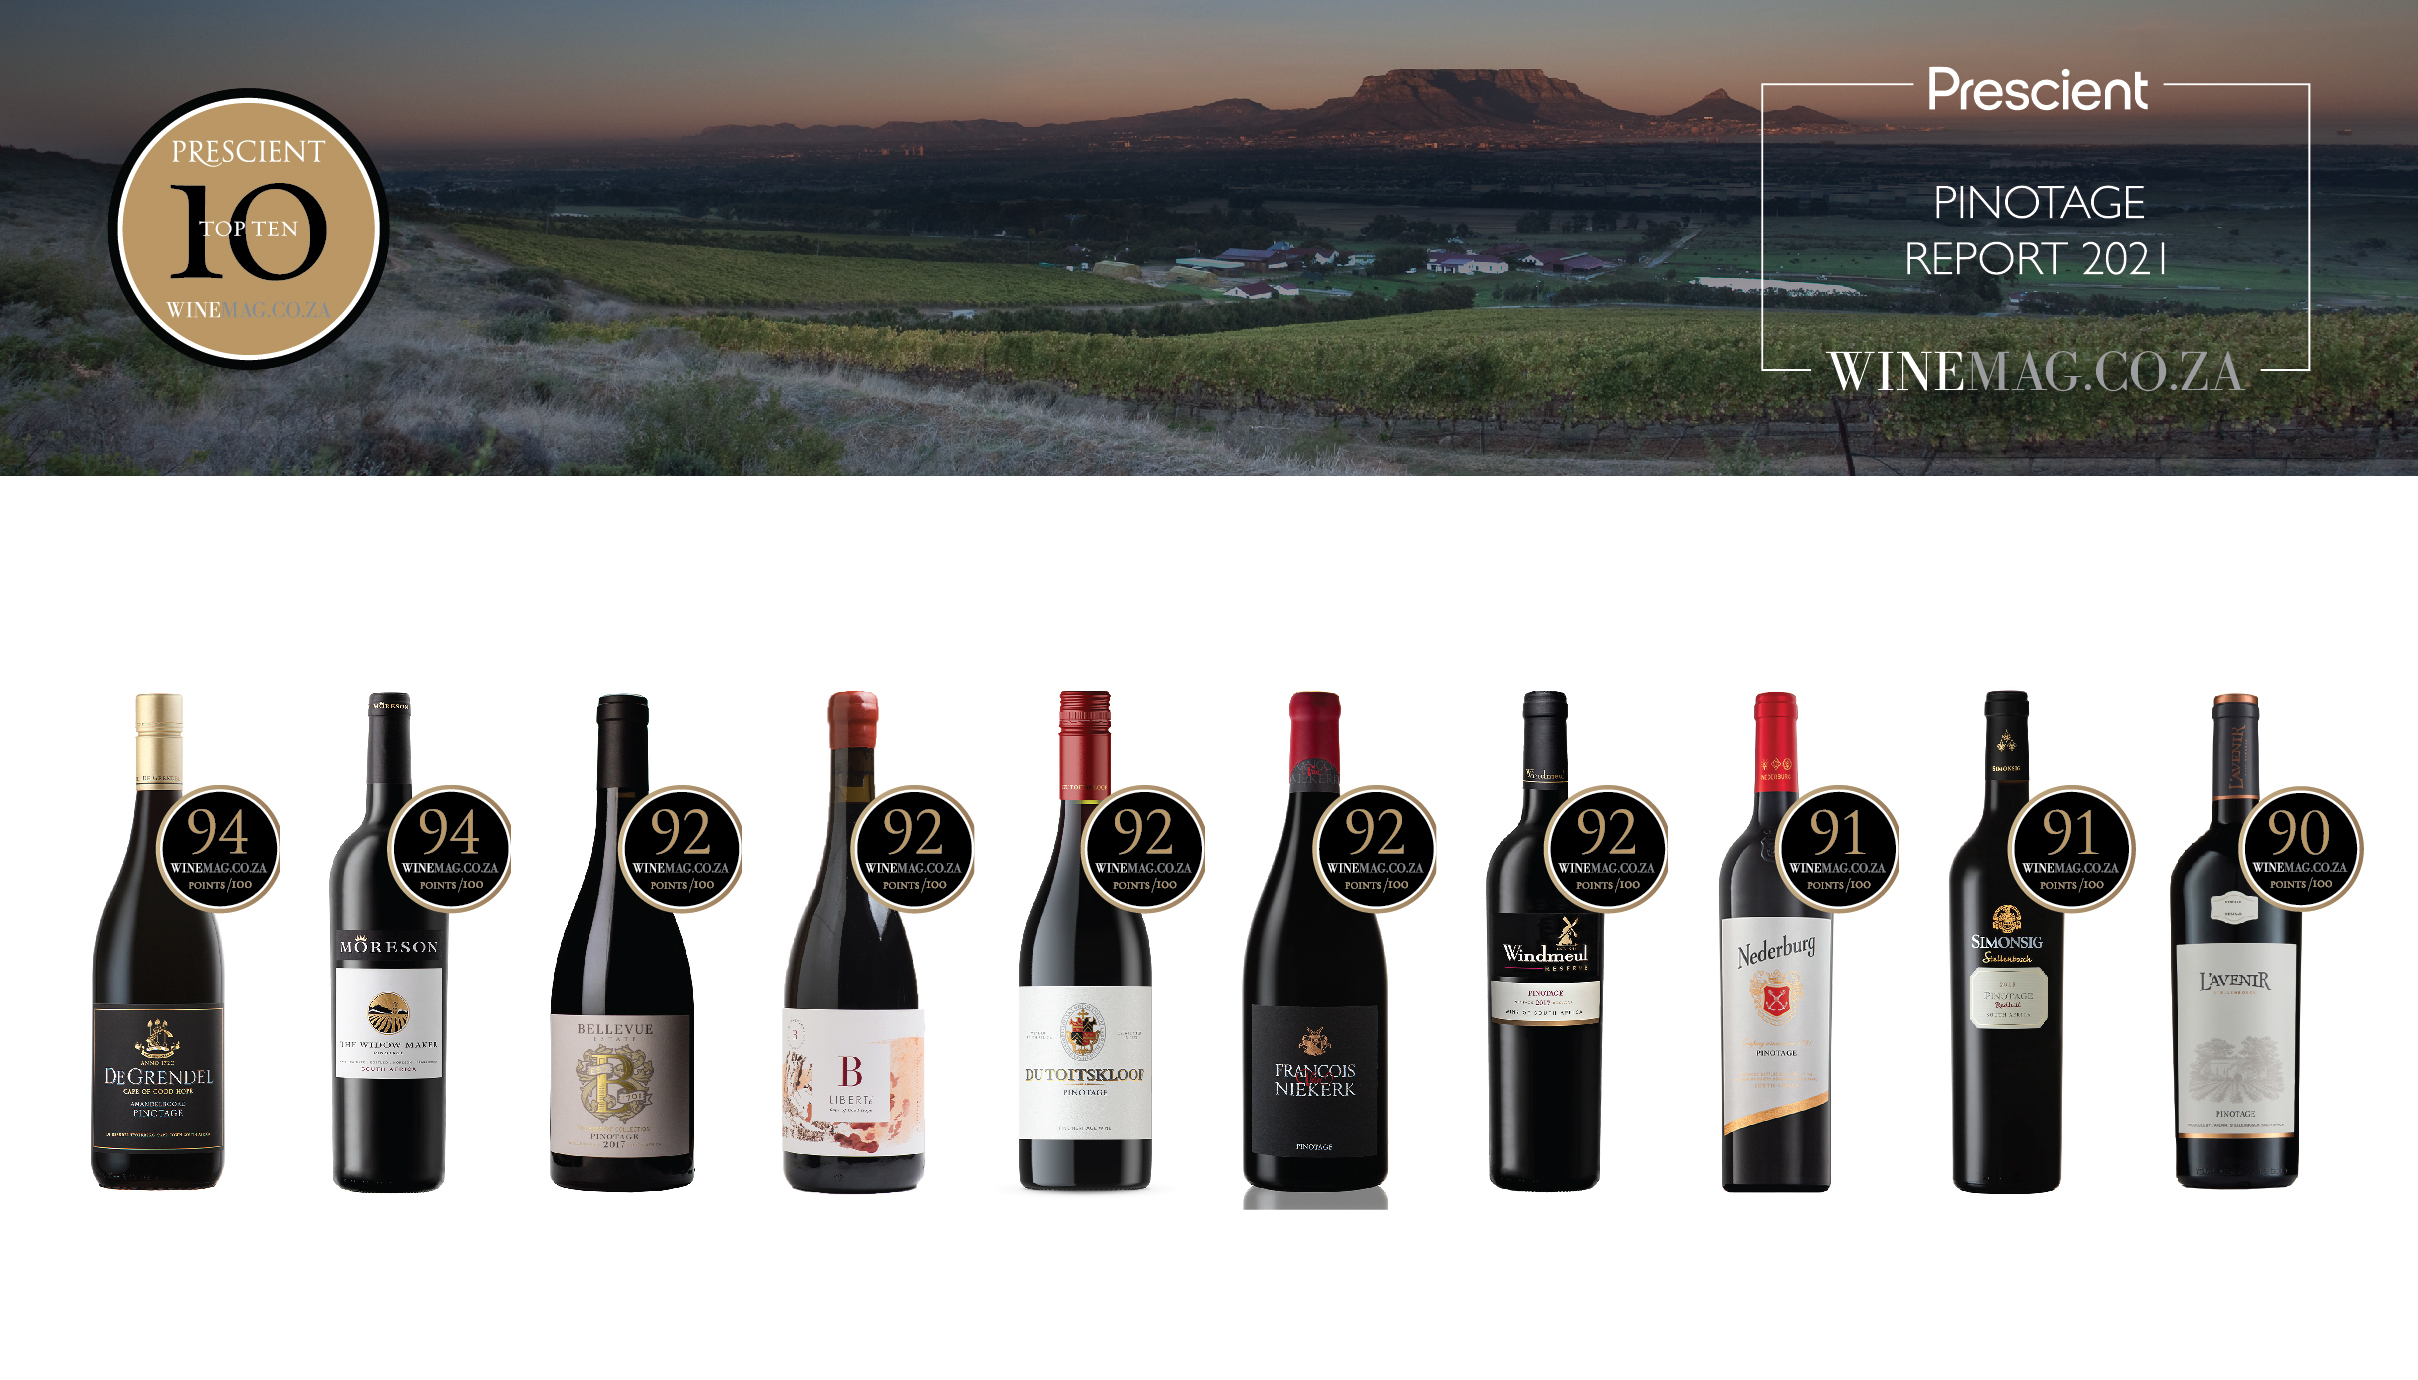 Prescient Pinotage Report 2021 Reveals Some Real South African Wine Gems photo